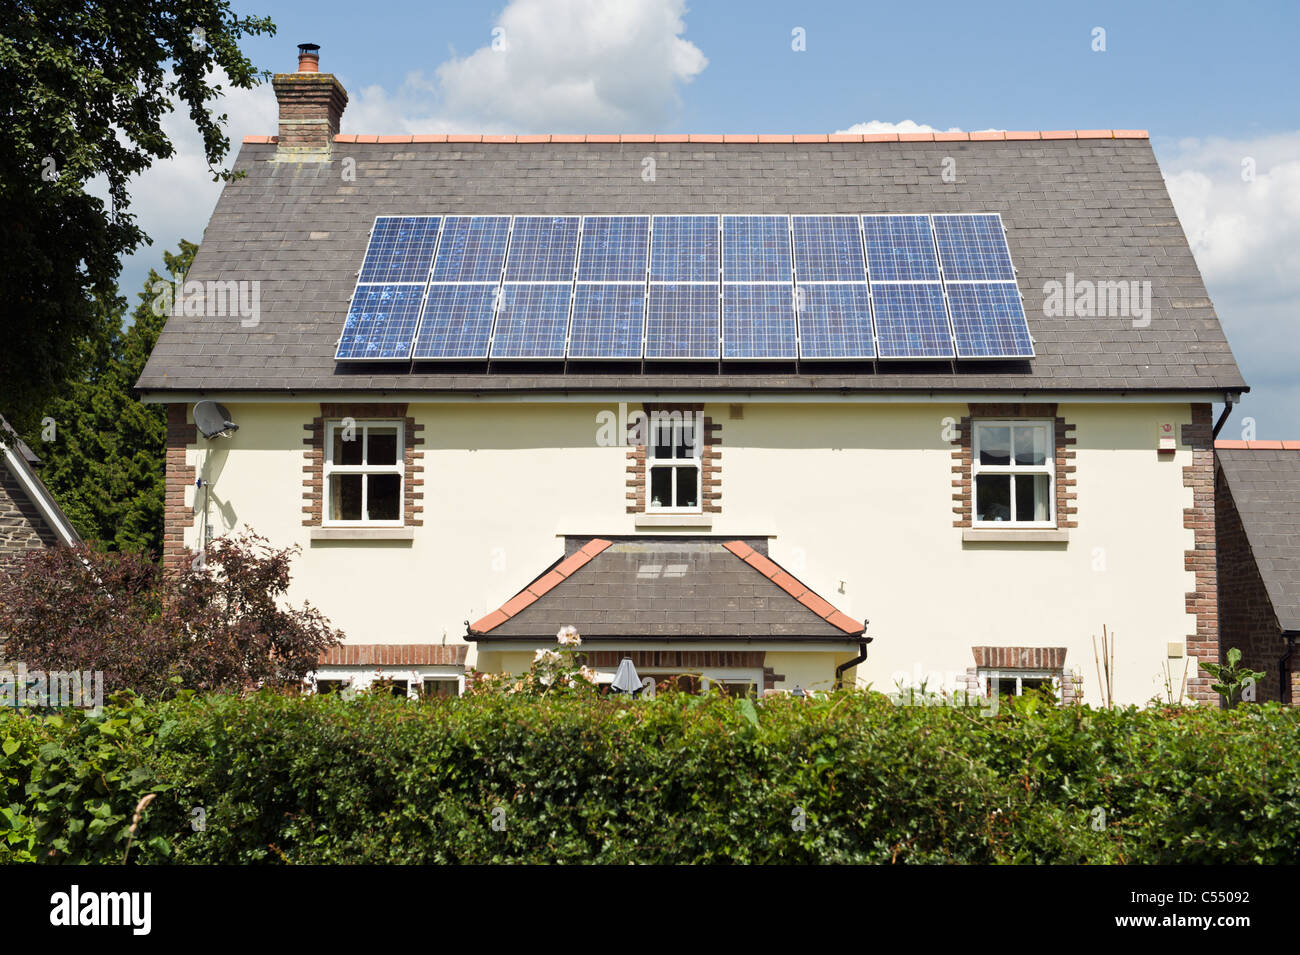 Solar panels on roof of detached house in village of Llangattock Powys South Wales UK - Stock Image